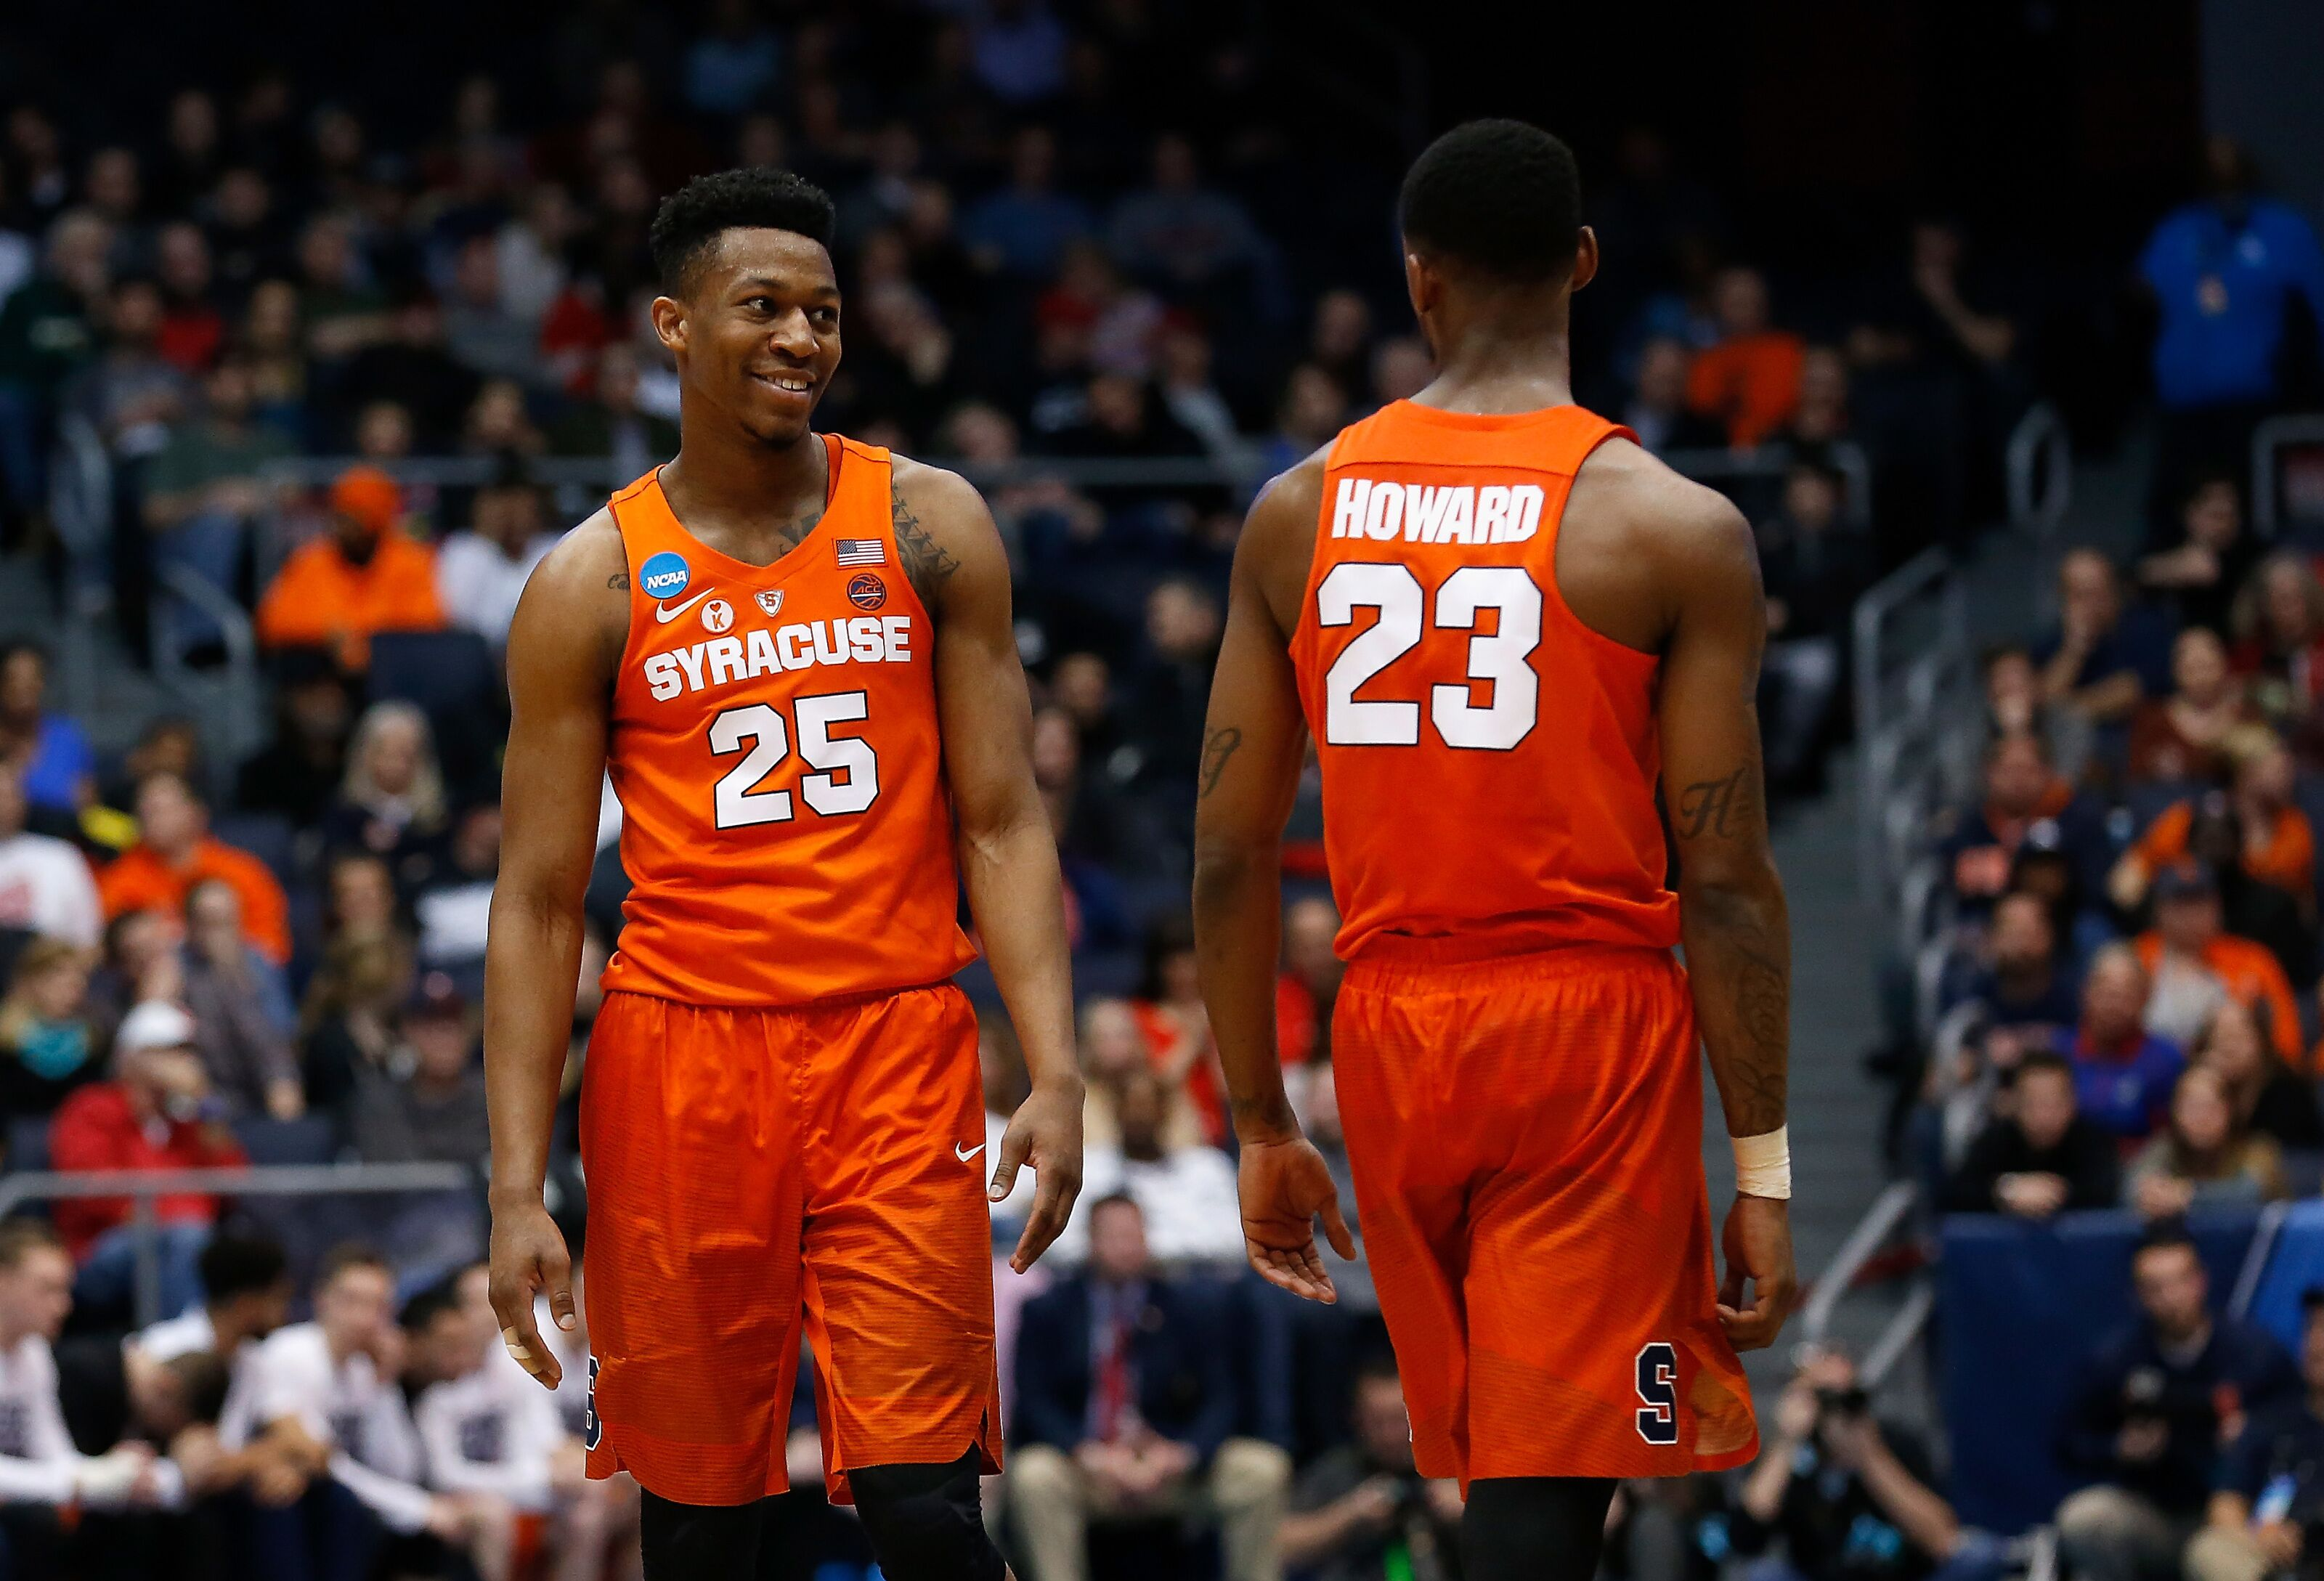 Syracuse Basketball Vs Boston College Game 2 How To Watch Listen